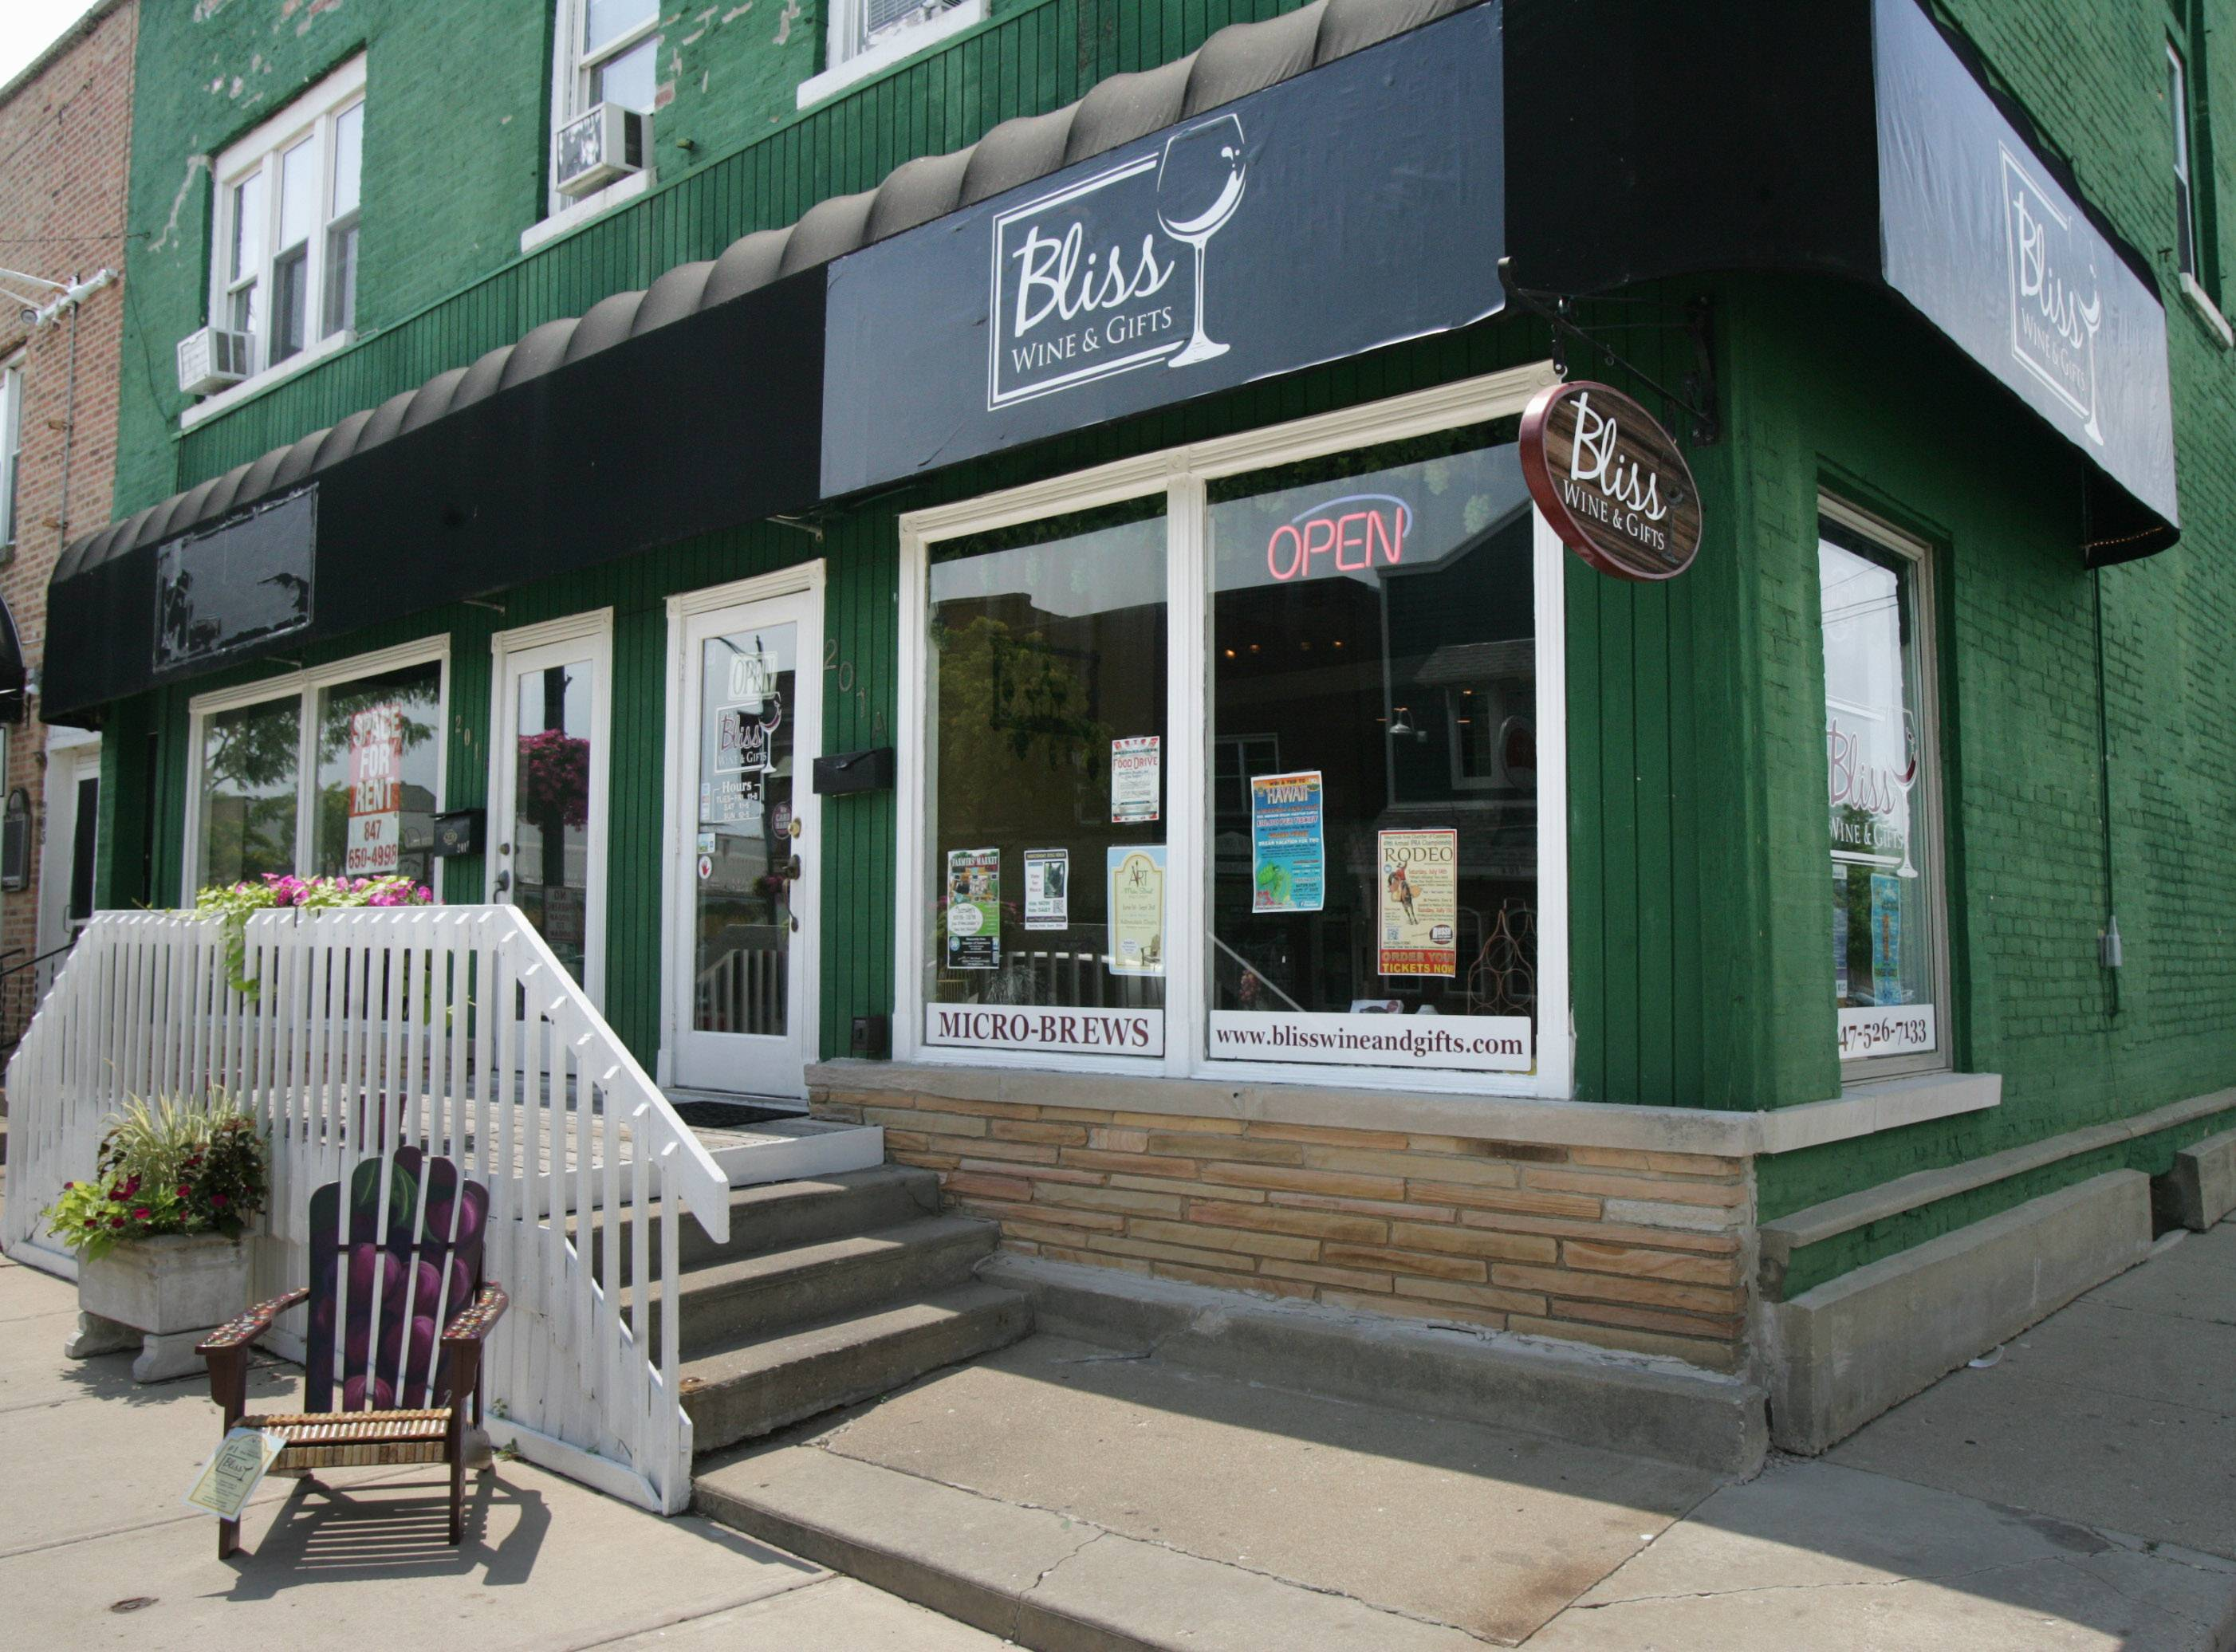 Deal could keep Bliss Wine & Gifts open in downtown Wauconda